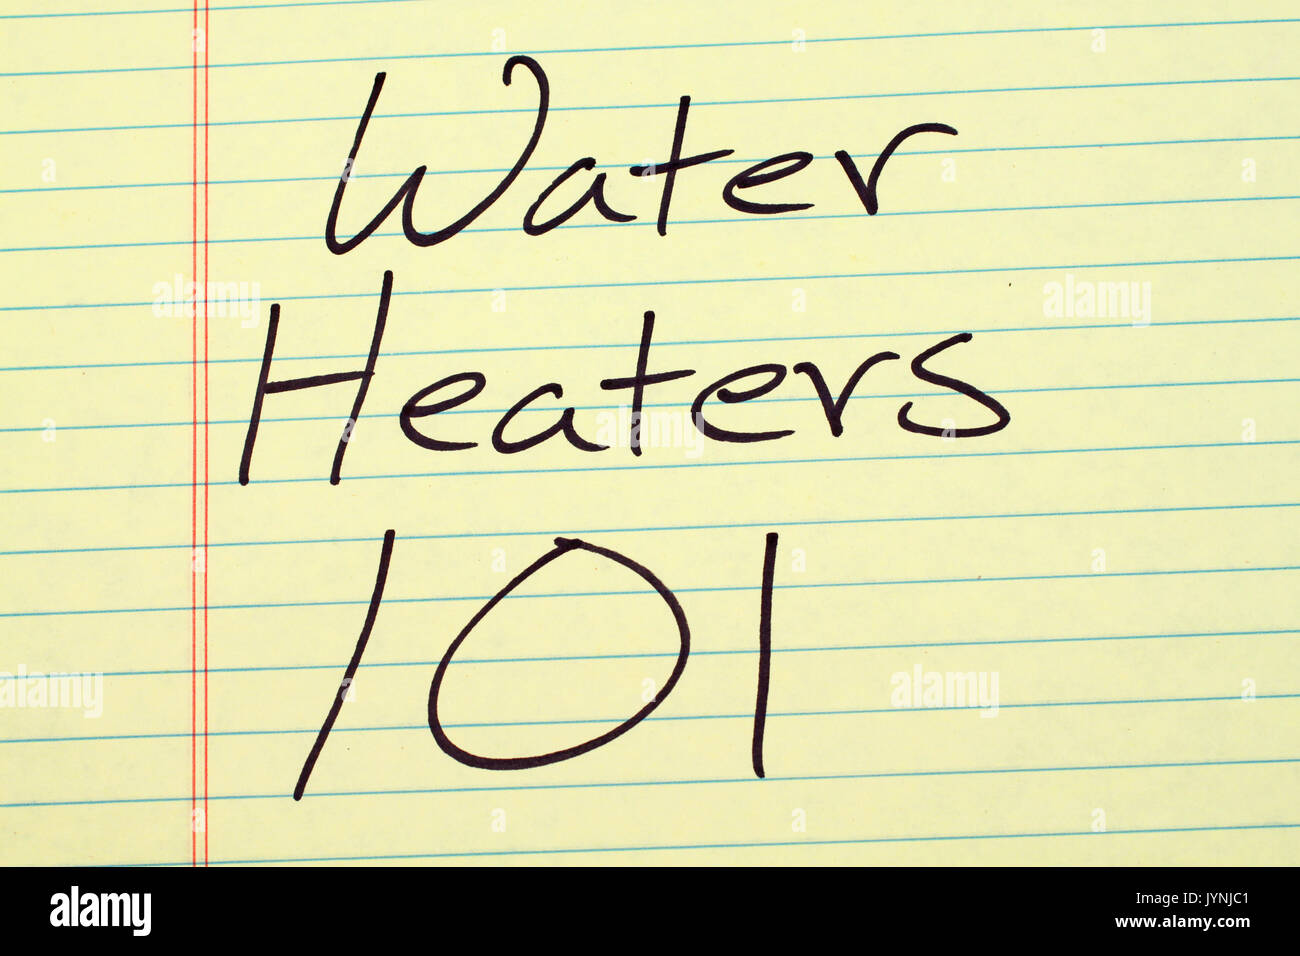 The words 'Water Heaters 101' on a yellow legal pad - Stock Image